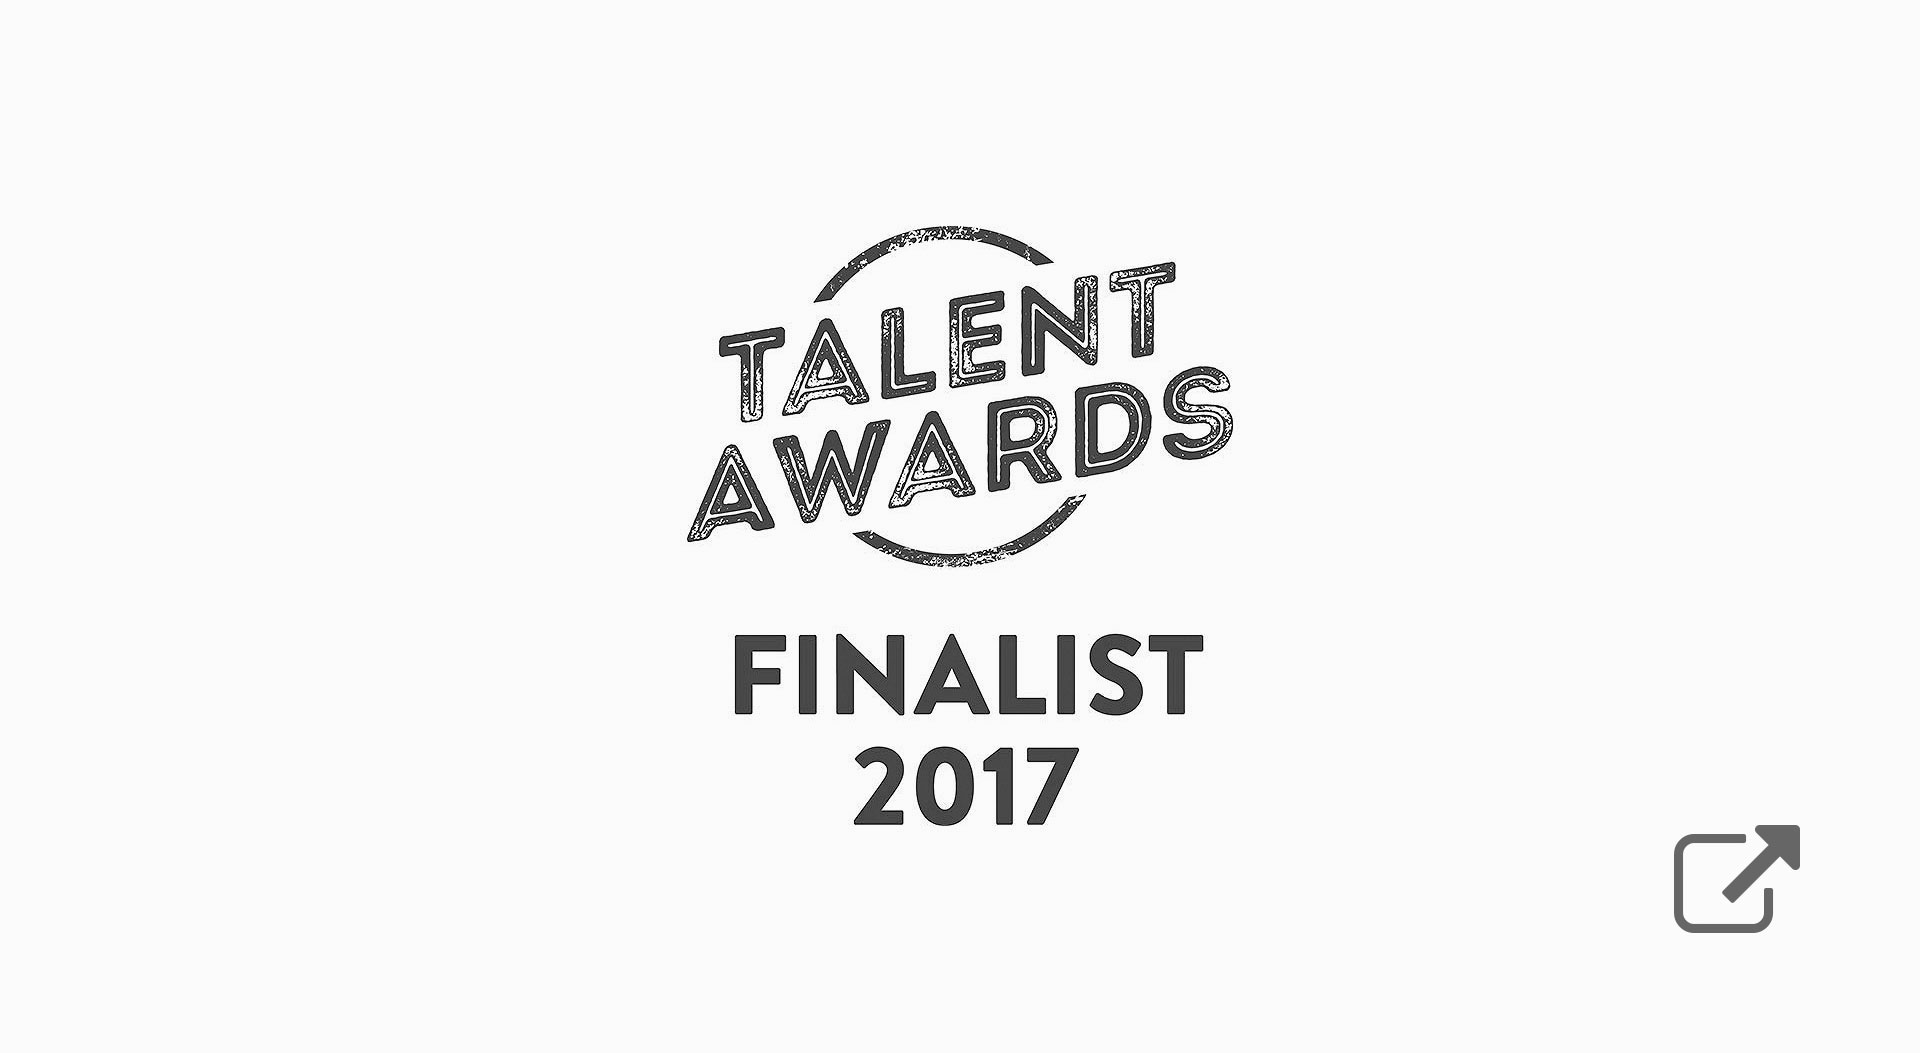 aquent talent awards finalist 2017